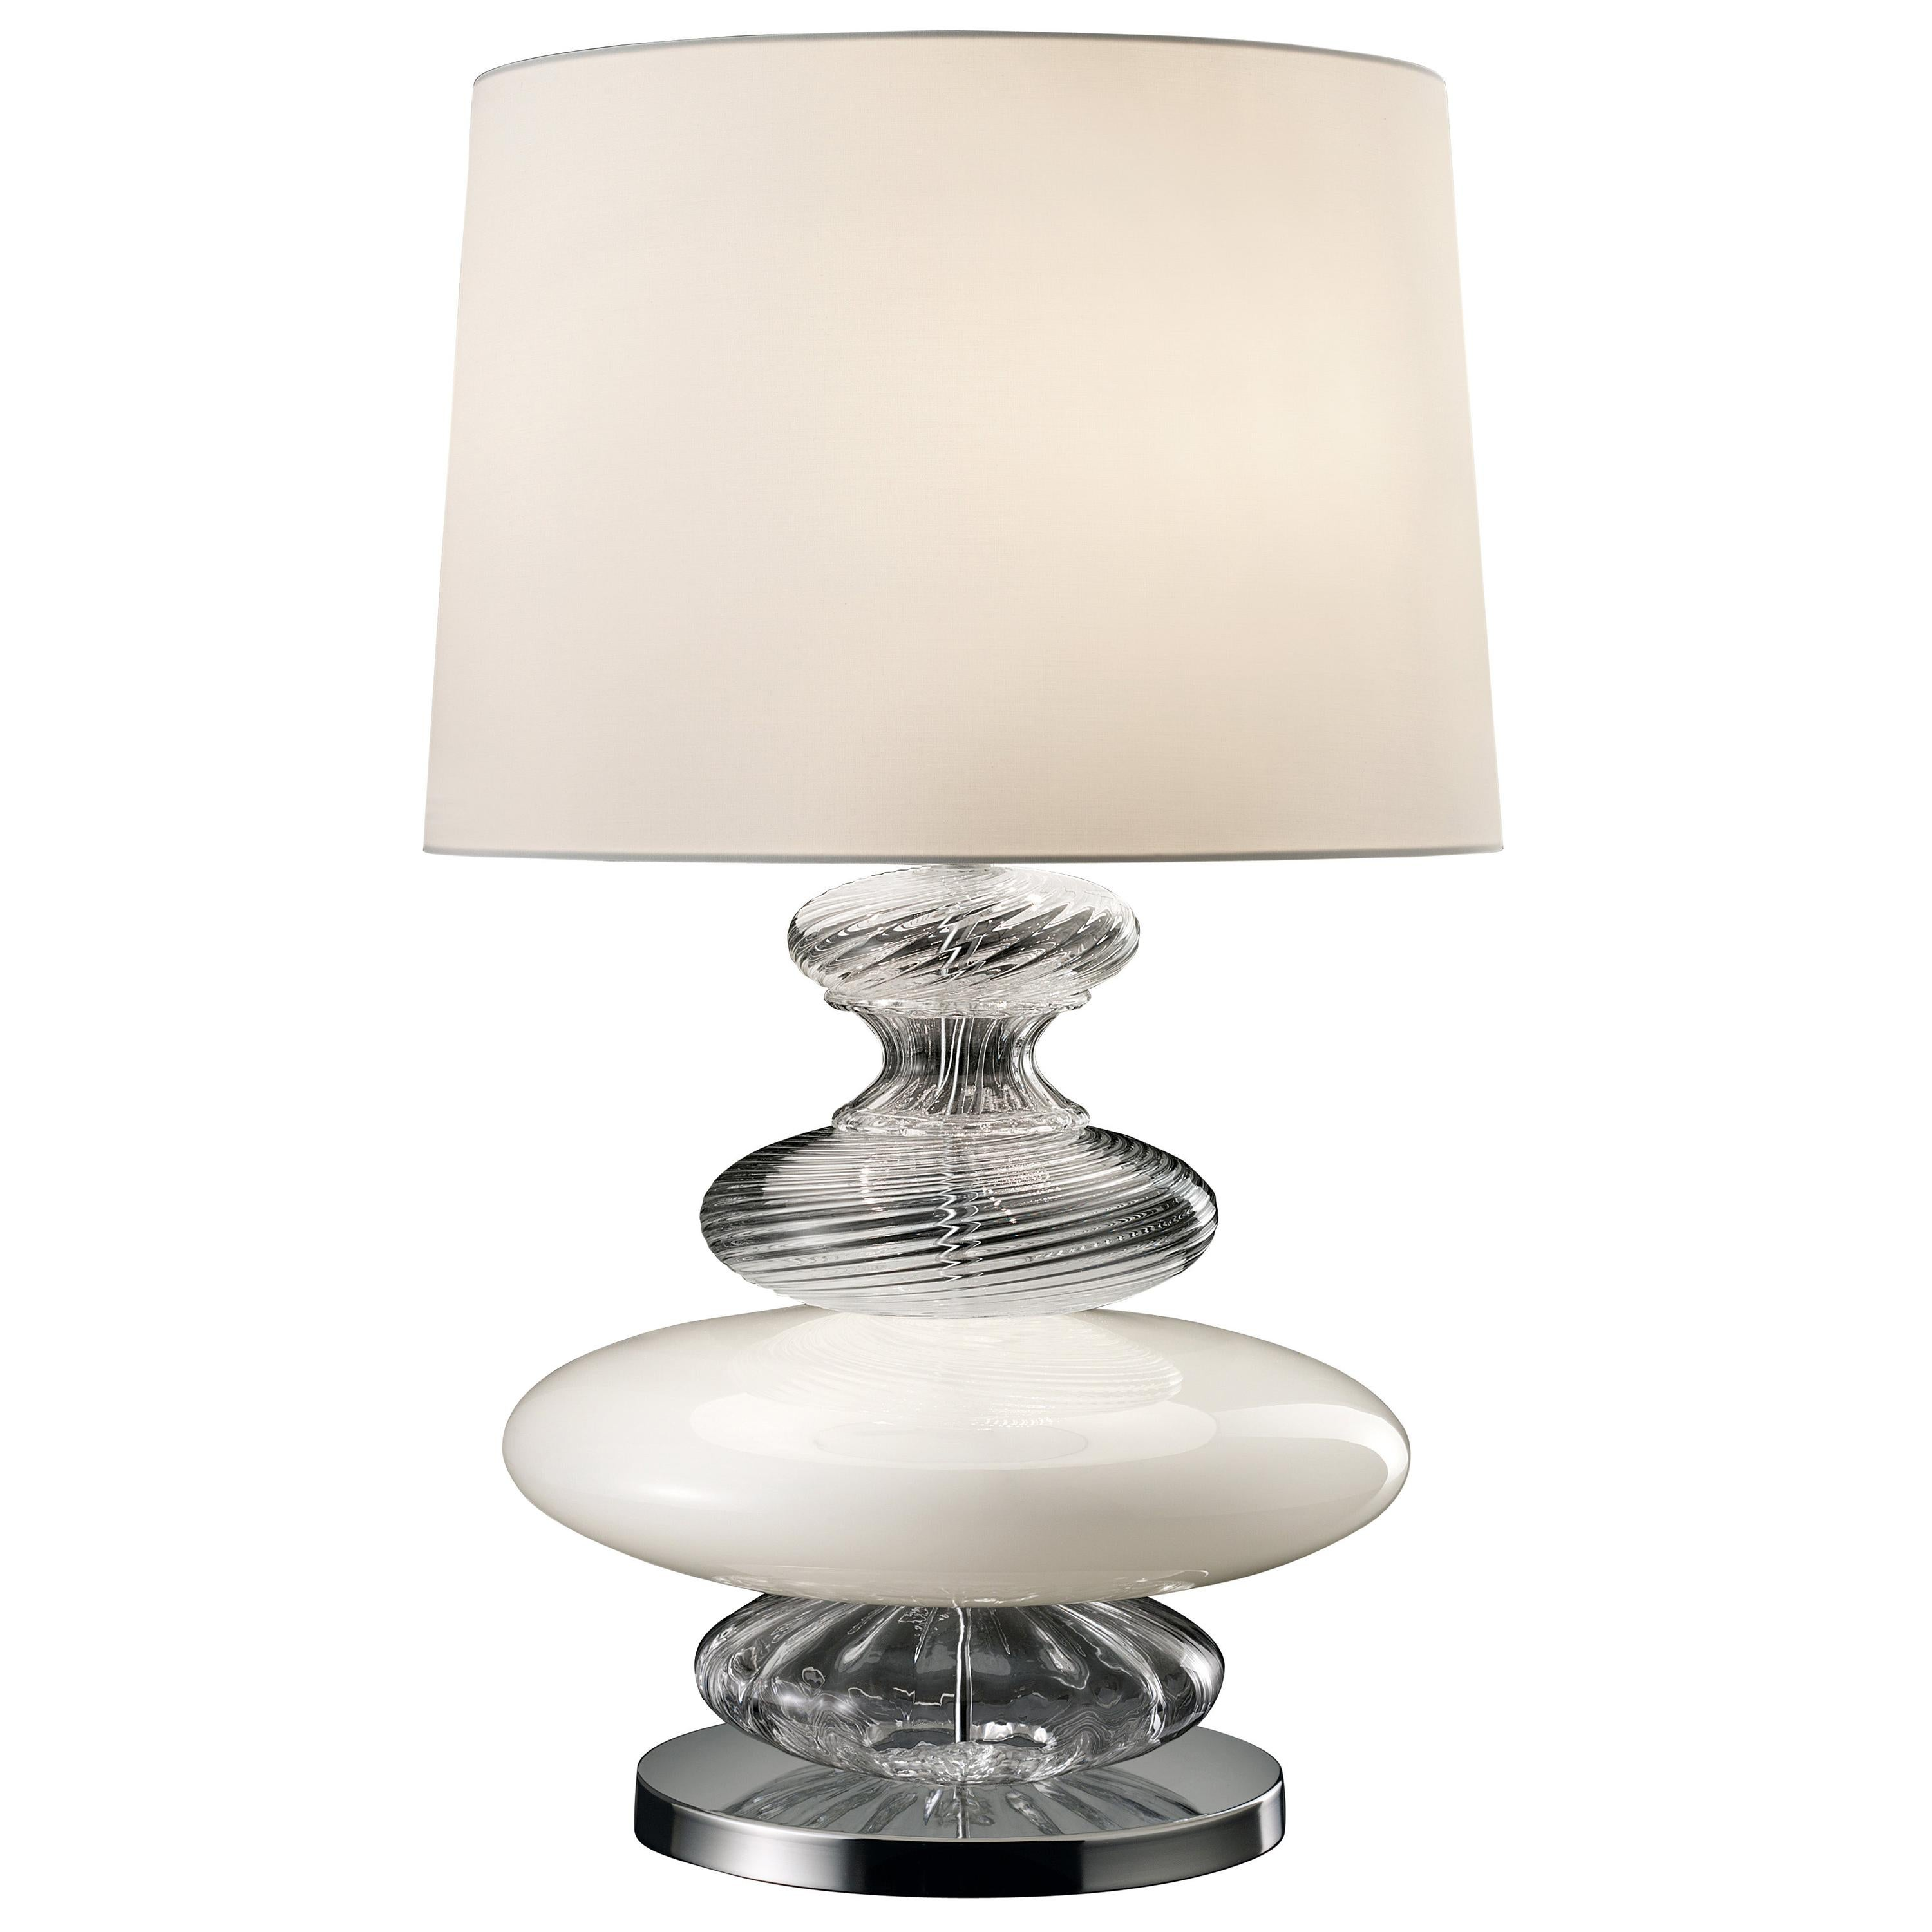 Barovier & Toso Amsterdam Table Lamp